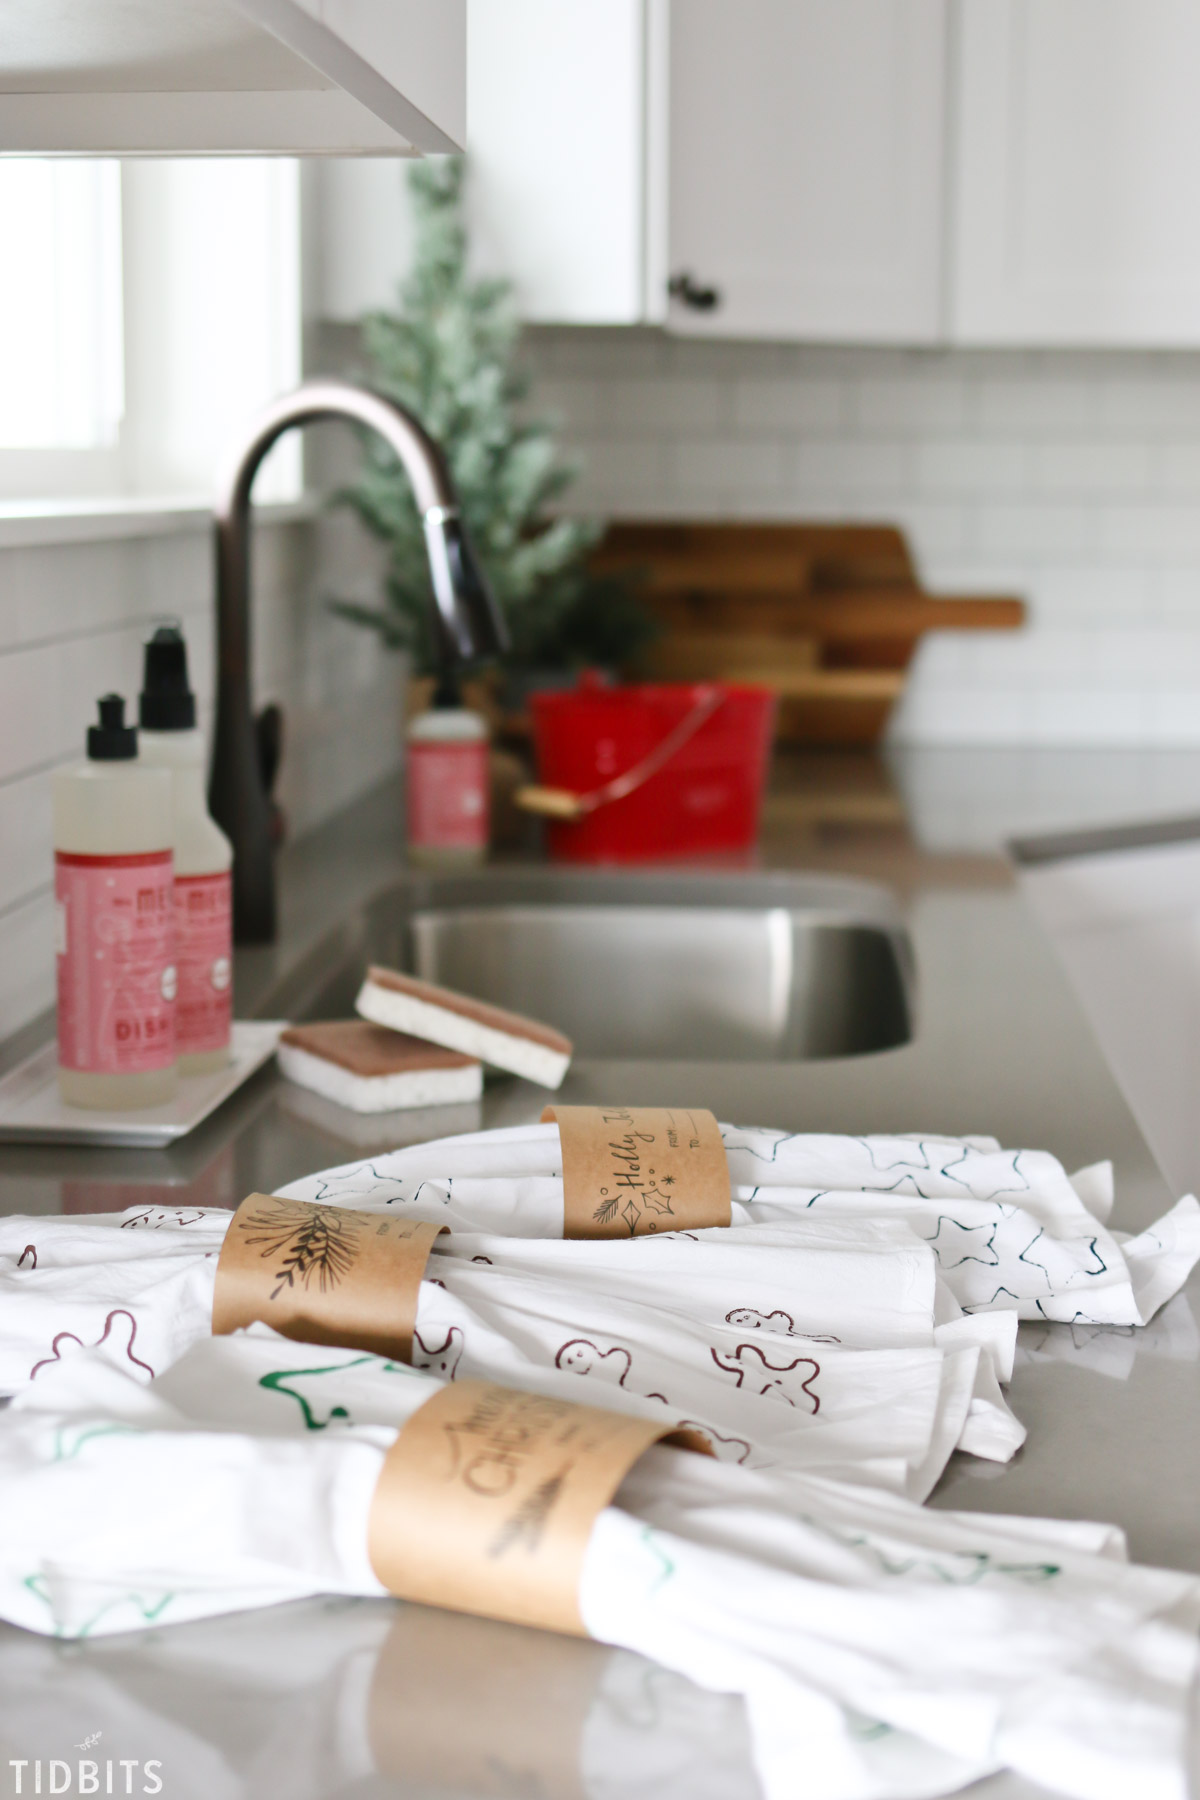 photograph regarding Printable Towels titled Cookie Cutter Stamped Xmas Tea Towels - Tidbits